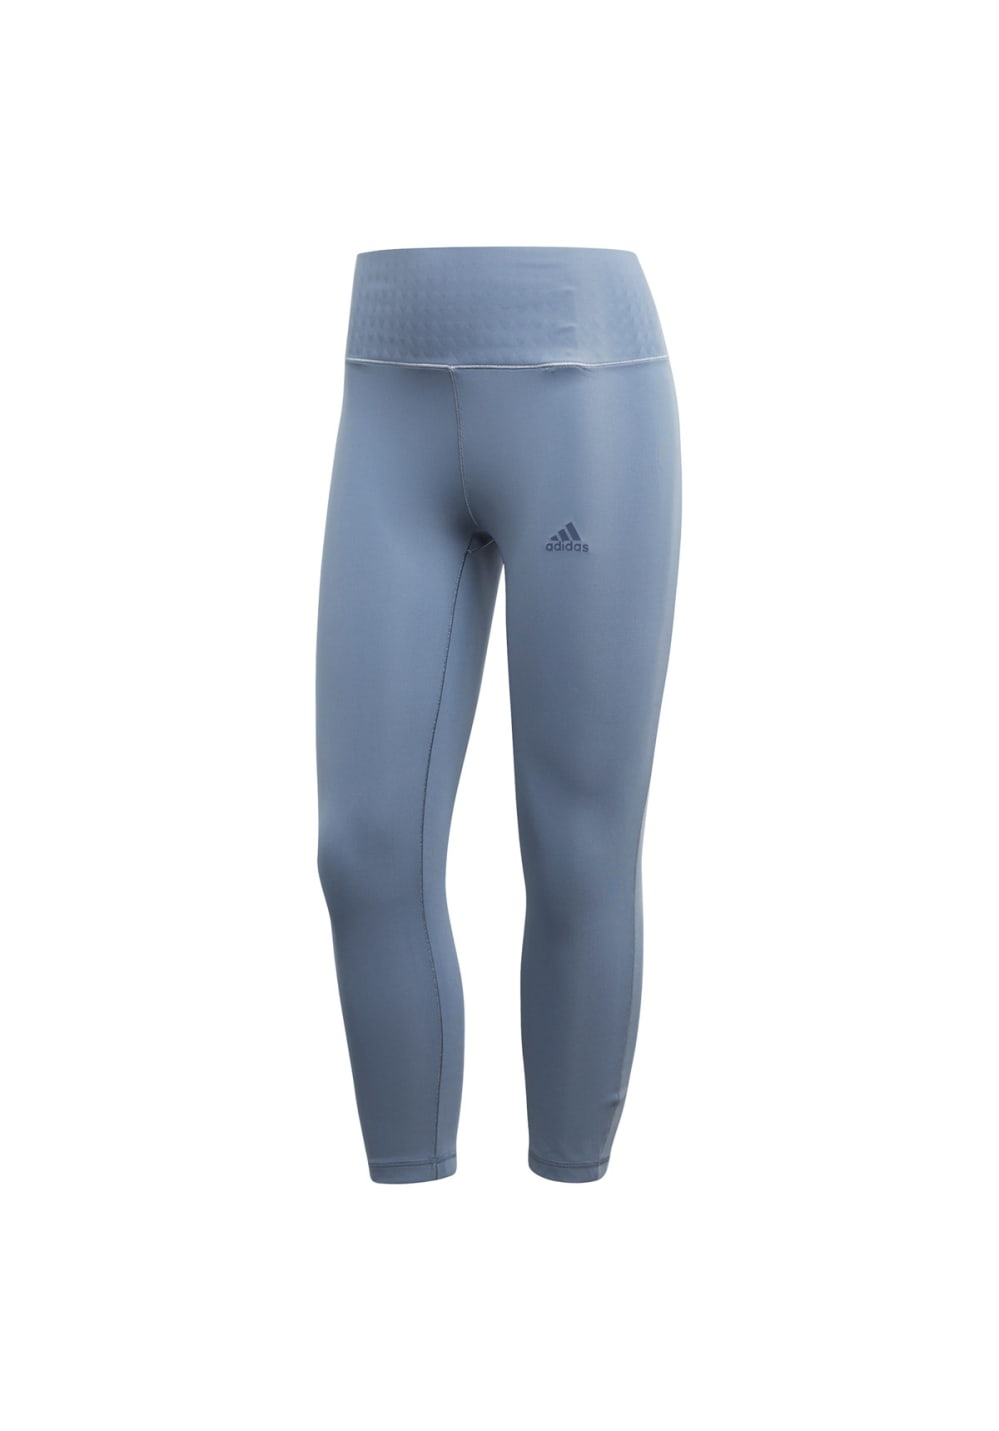 Adidas Femme Ultimate Fitness Pour Pantalons Climalite 34